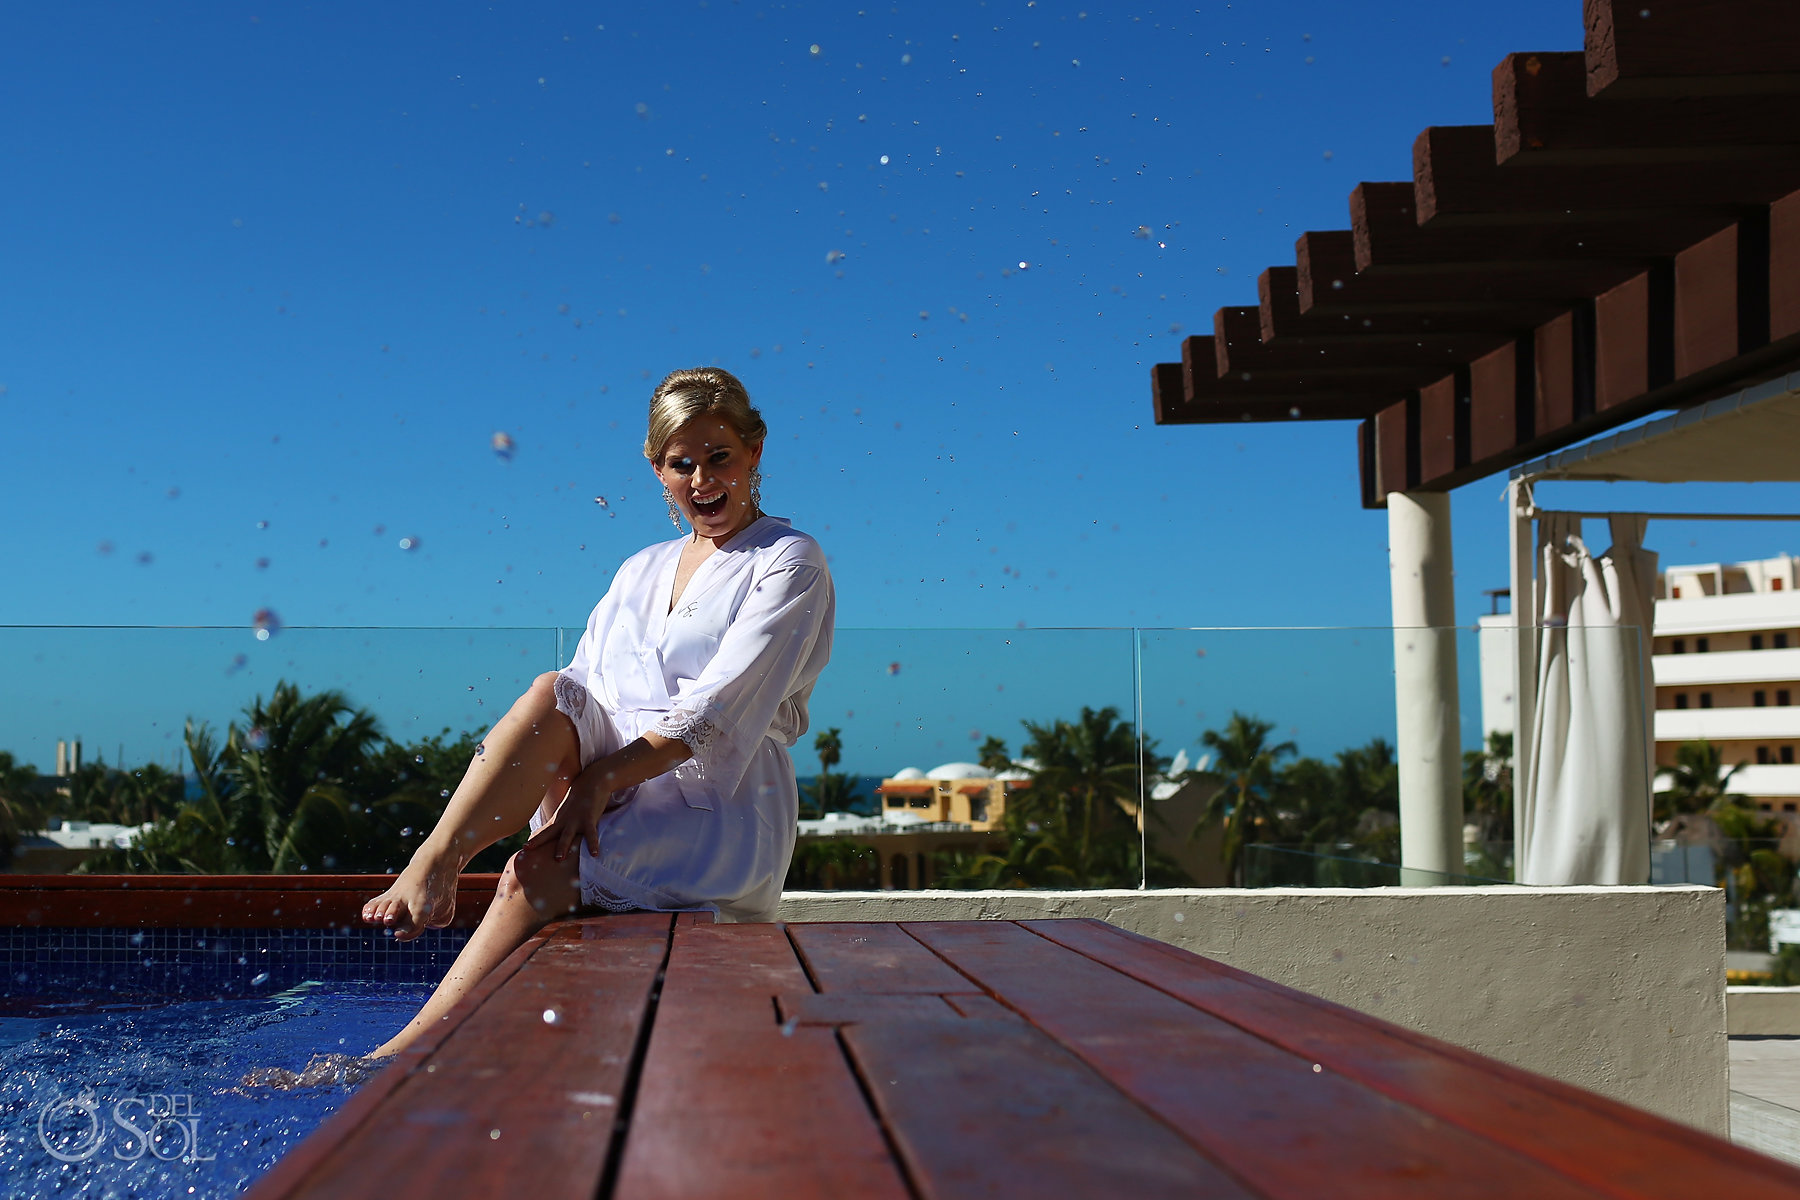 Amazing Bride Getting ready photo session at balcony pool Hotel Privilege Aluxes Isla Mujeres